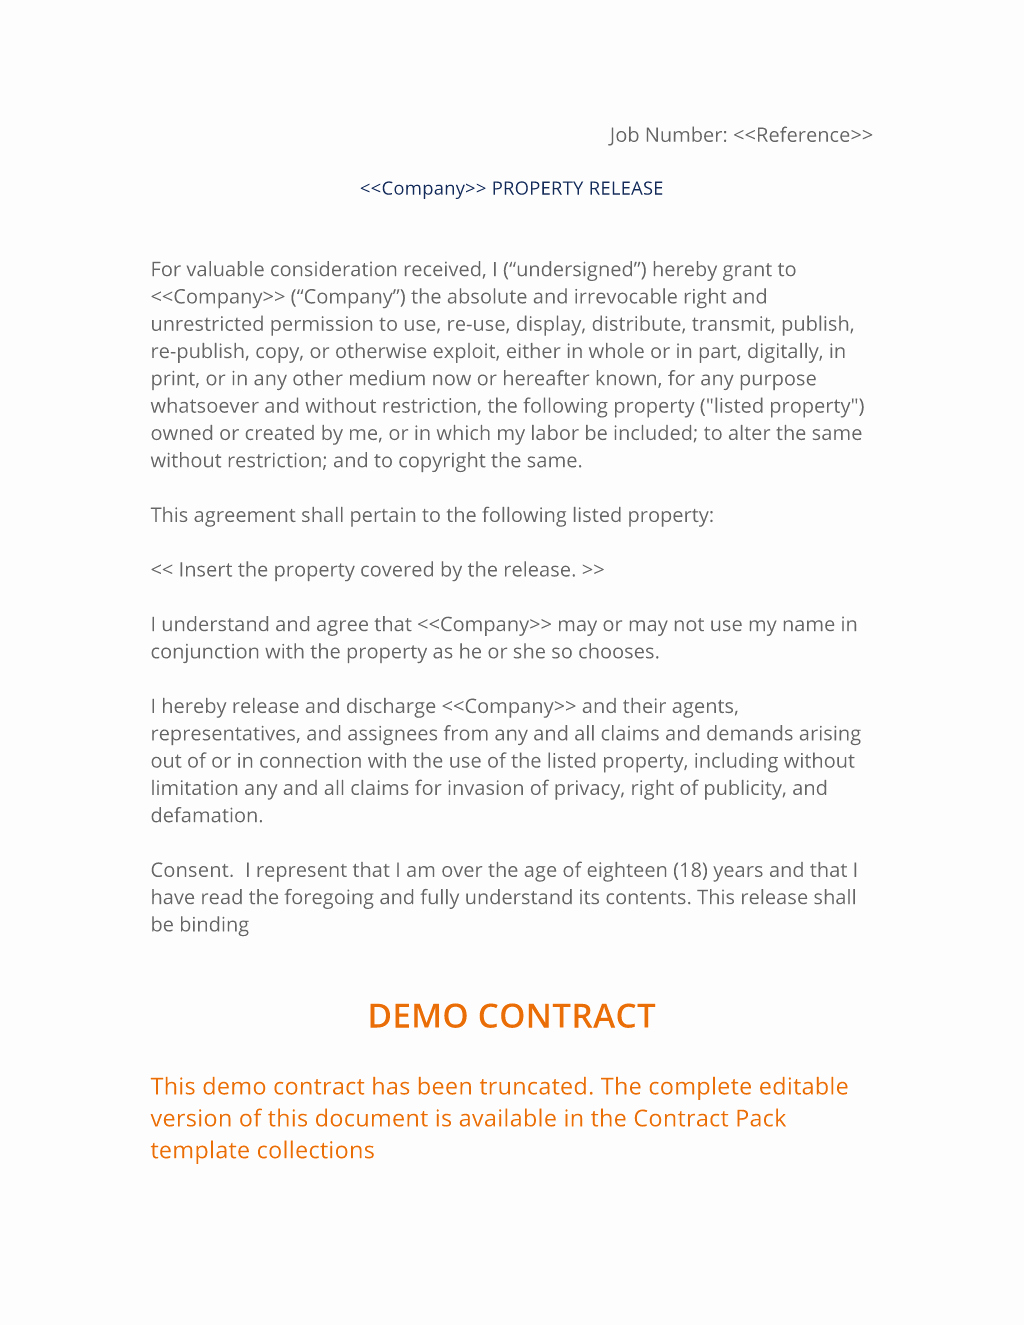 Property Release form Template Inspirational Property Release Agreement with Witness 3 Easy Steps